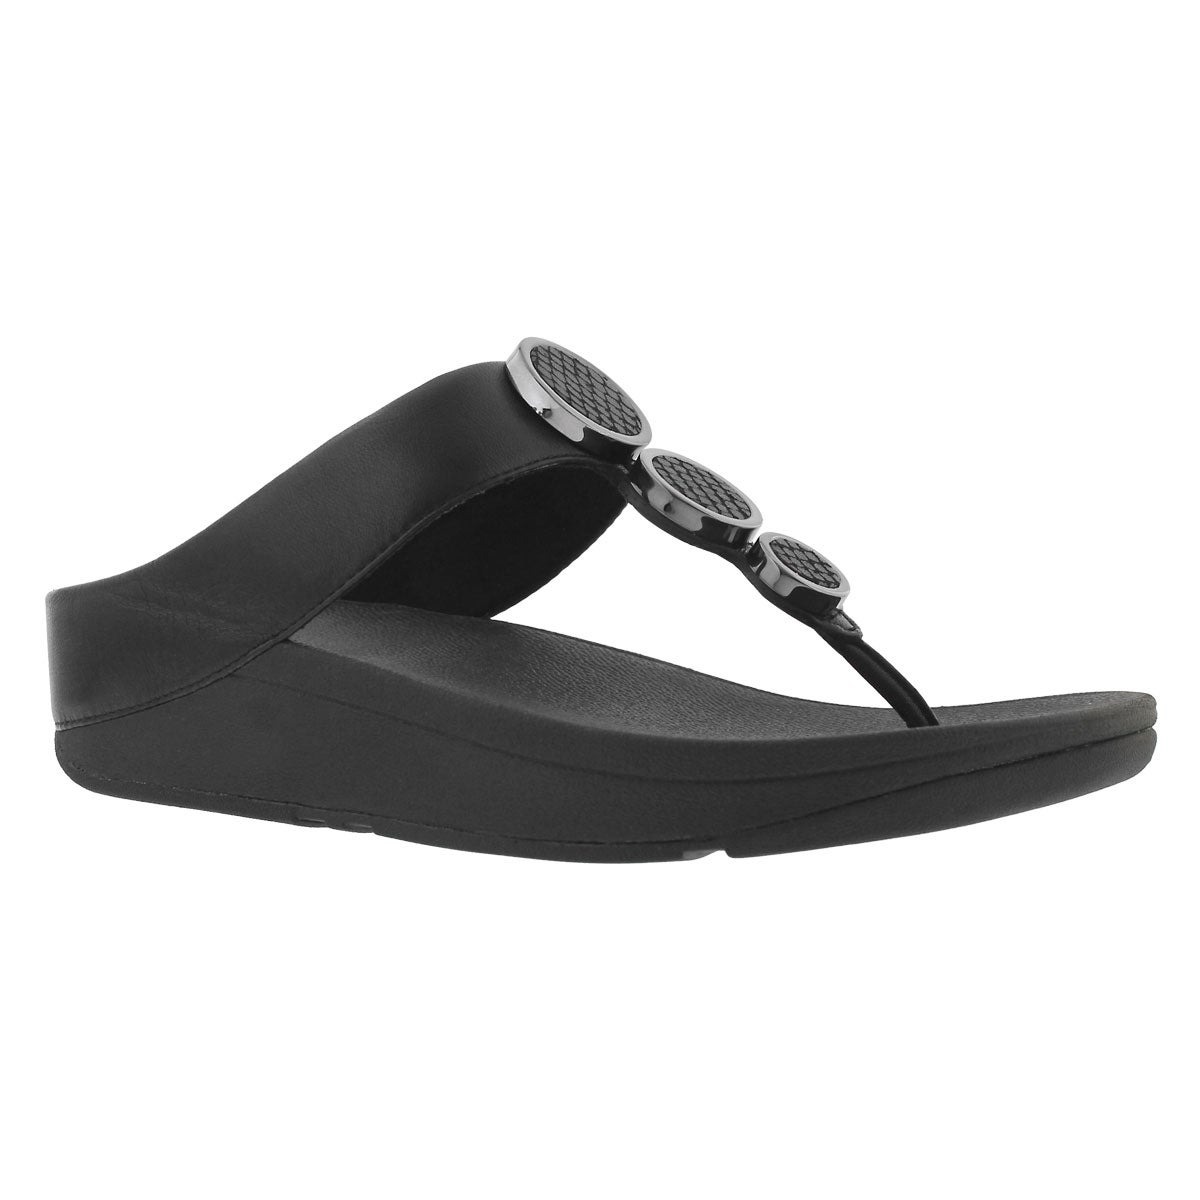 Women's HALO TOE black thong sandal